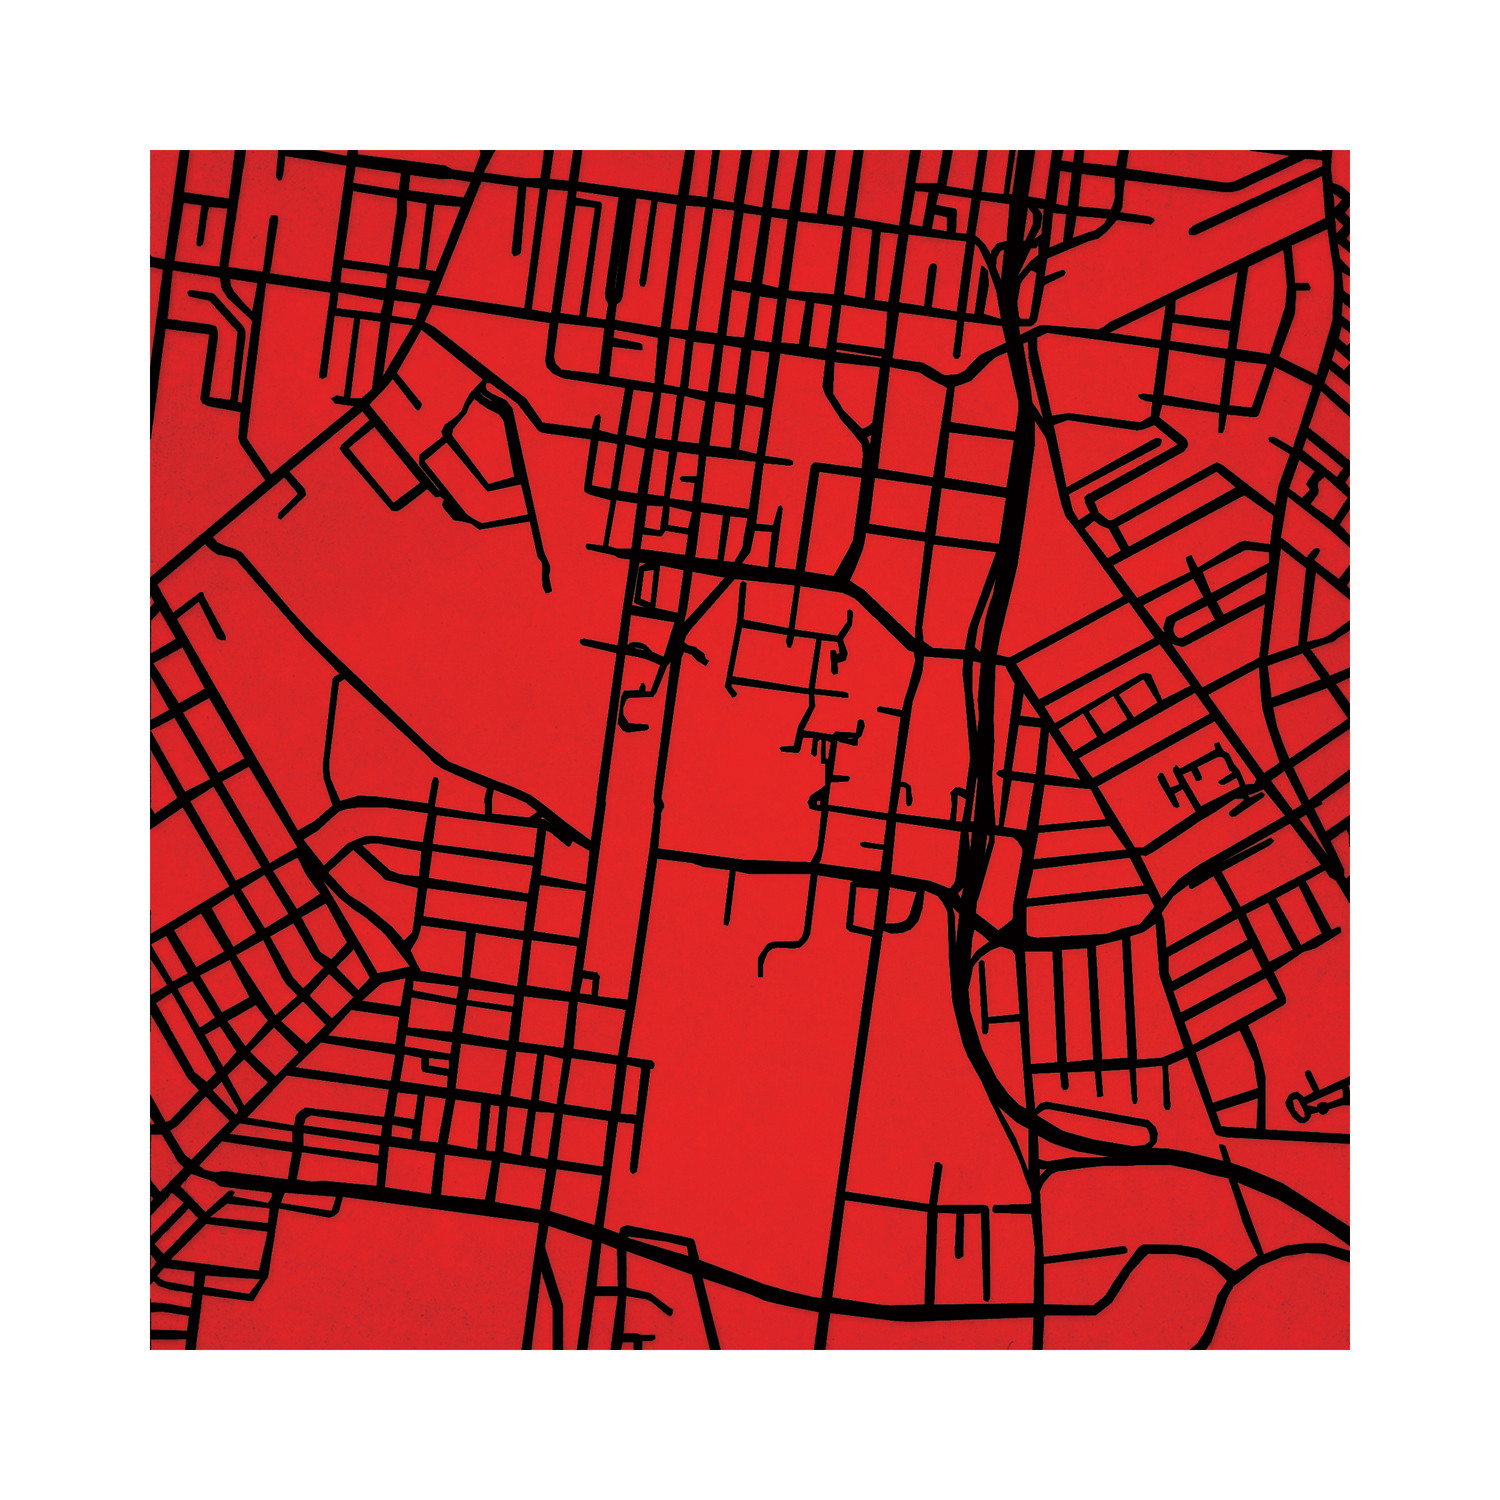 University of Louisville - College Campus Maps - Touch of Modern